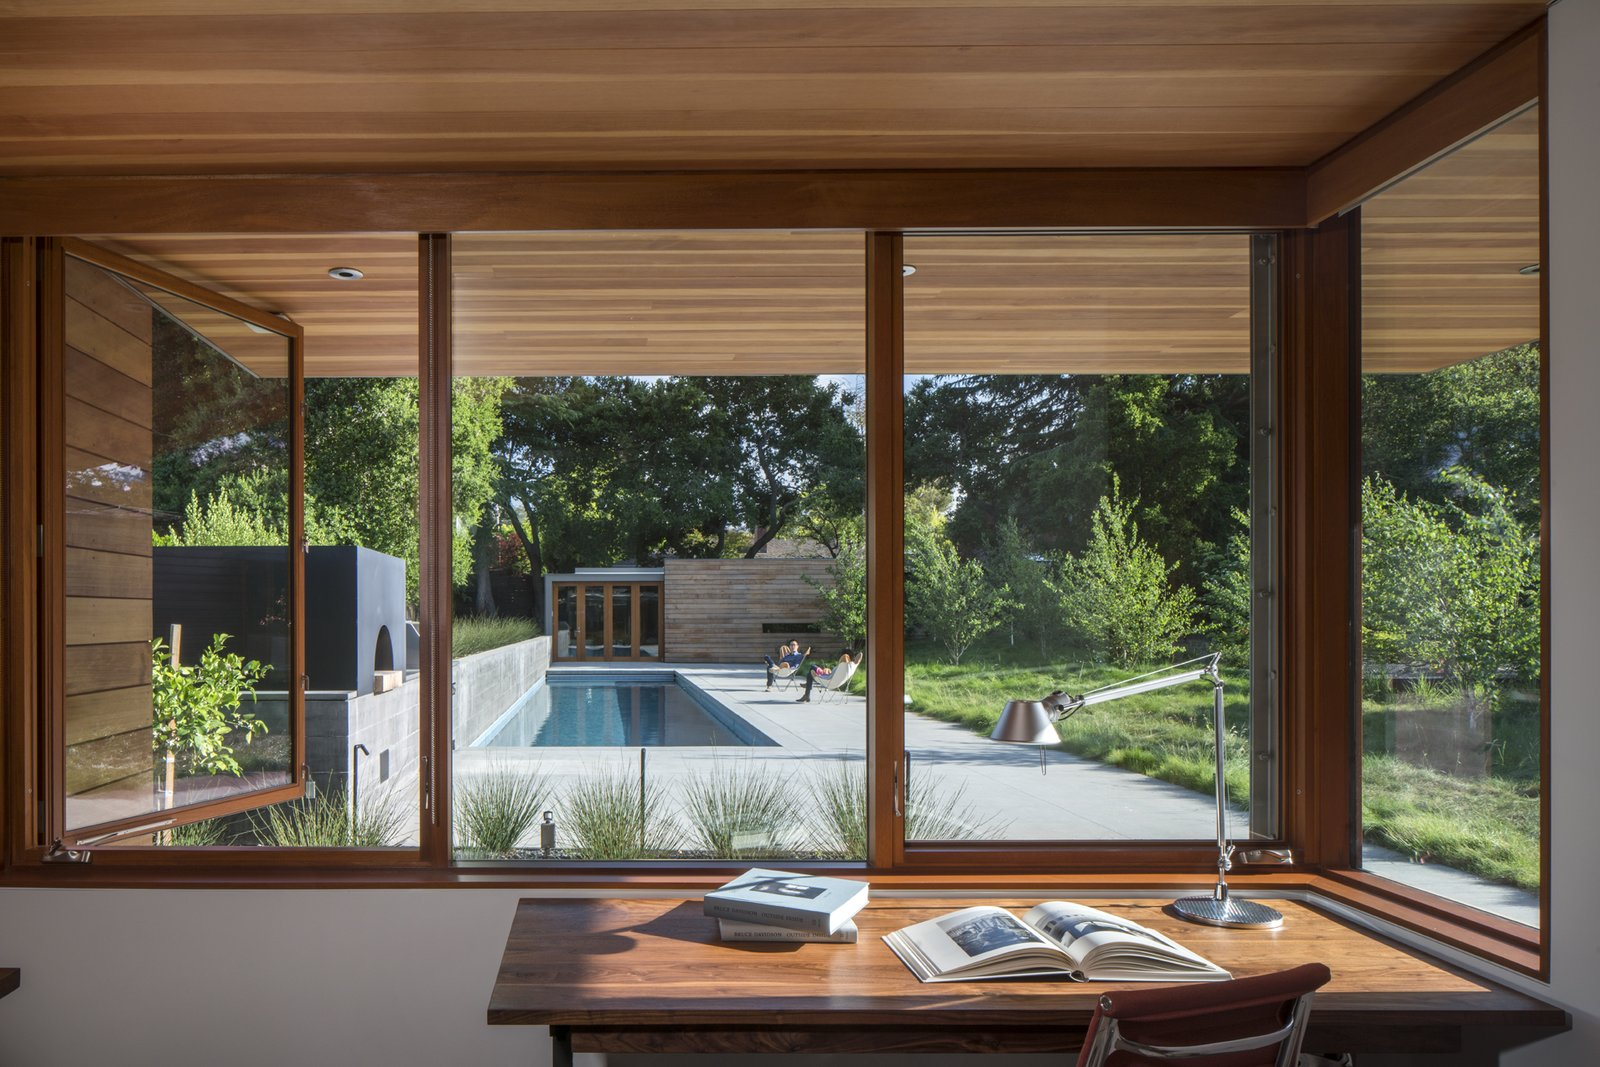 Outdoor, Small, Lap, and Concrete The study faces the pool area.  Best Outdoor Small Lap Photos from Channeling Midcentury Modern in Northern California